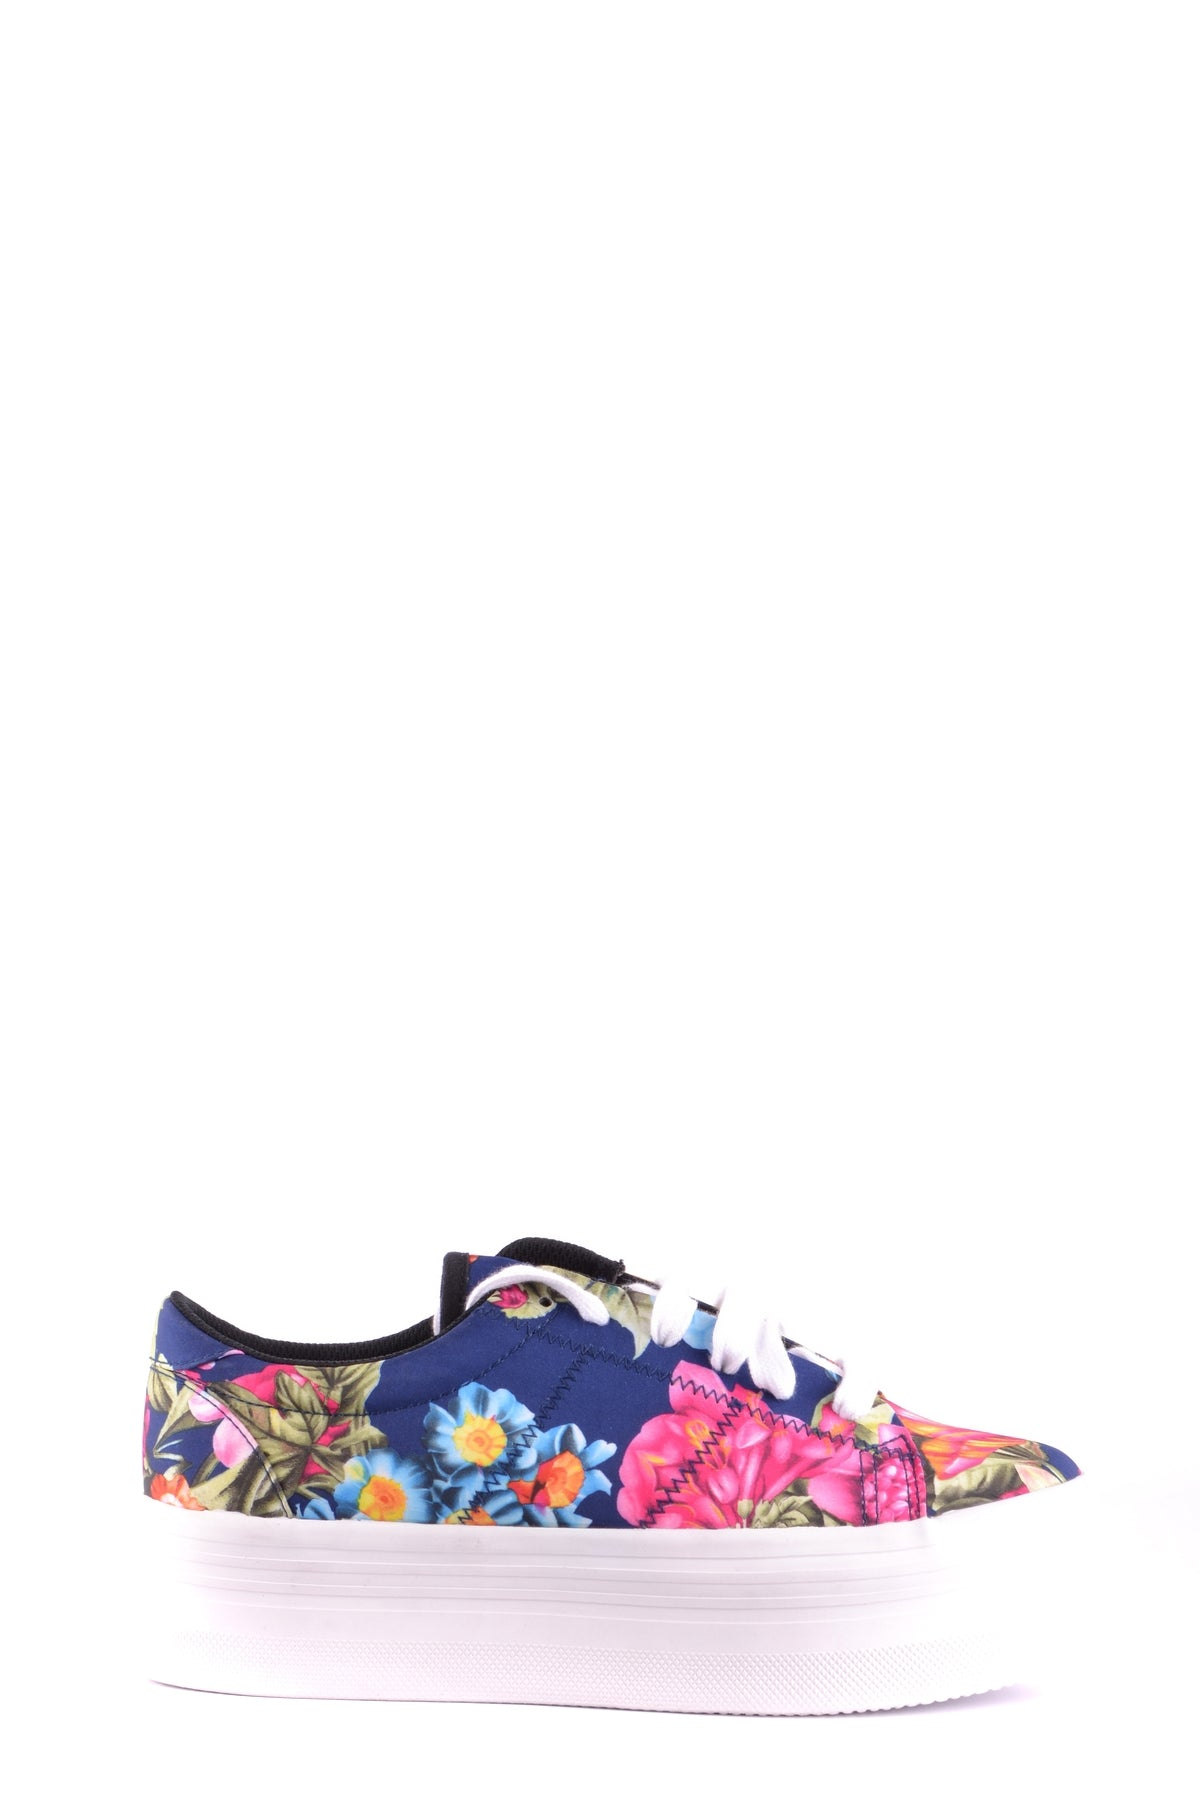 Shoes Jc Play By Jeffrey Campbell-Shoes - WOMAN-38-Product Details Type Of Accessory: ShoesTerms: New With LabelYear: 2017Main Color: MulticolorSeason: Spring / SummerMade In: VietnamSize: EuGender: WomanComposition: Tissue 100%-Keyomi-Sook